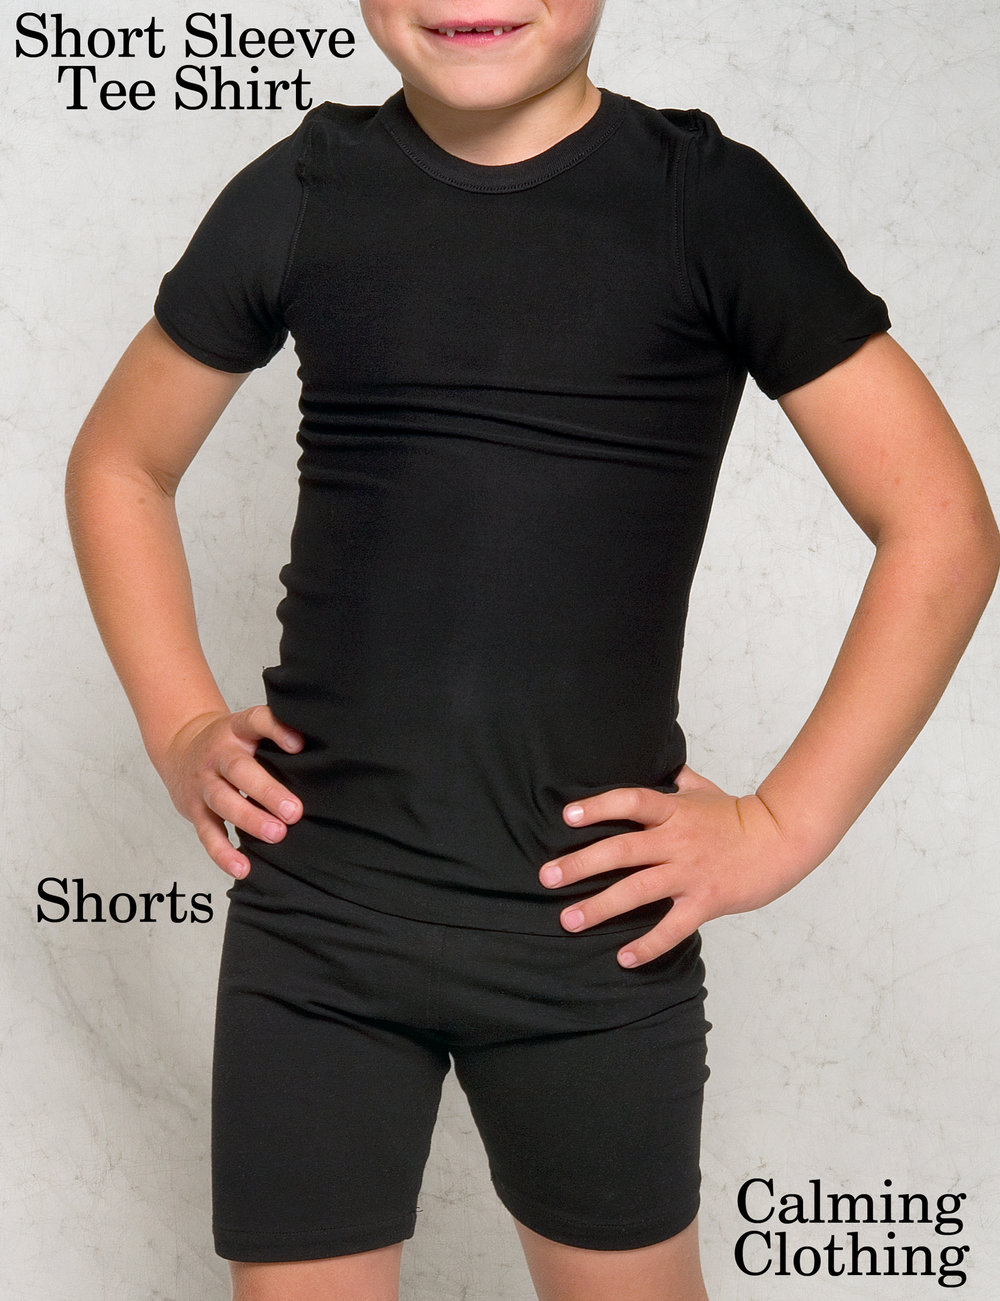 calming_clothing_black_teeshirt_shorts.jpg